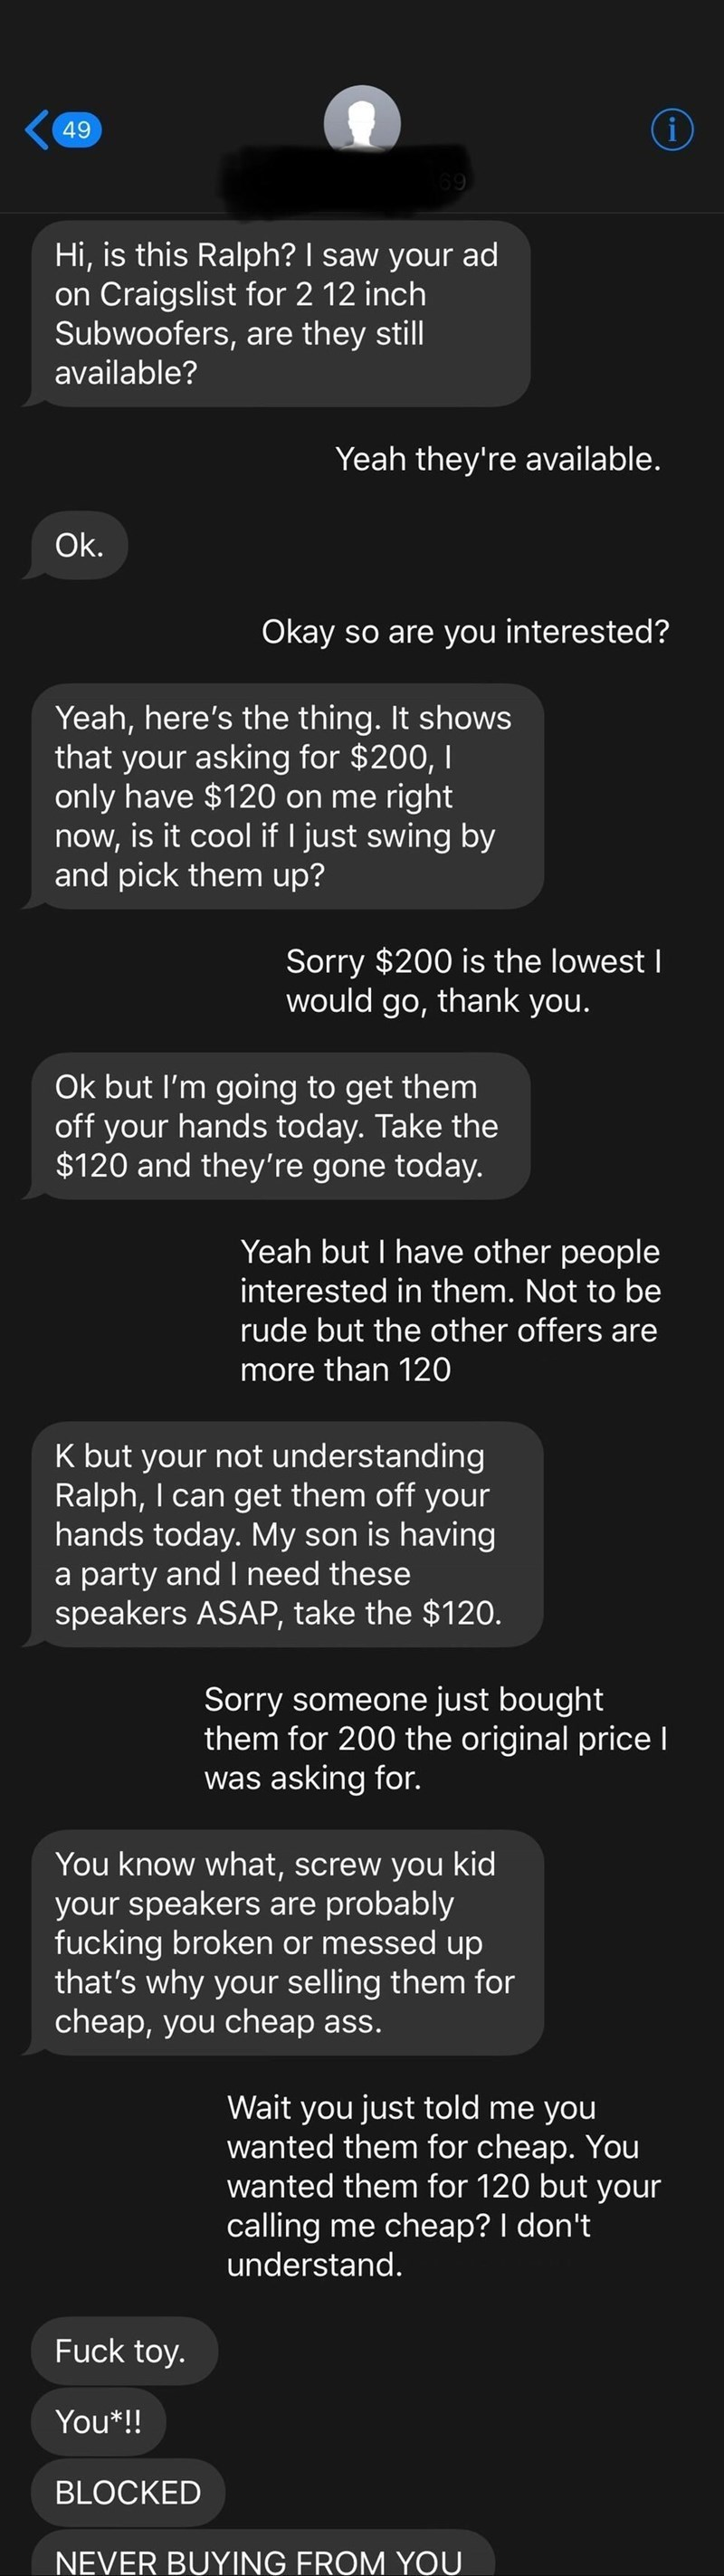 messages about subwoofers Hi, is this Ralph? I saw your ad Craigslist for 2 12 inch Subwoofers, are they still available? on Yeah they're available. Ok. Okay o are you interested? Yeah, here's the thing. It shows that your asking for $200, I only have $120 on me now, is it cool if l just swing by and pick them up? right Sorry $200 is the lowest I would go, thank you. Ok but I'm going to get them off your hands today. Take the $120 and they're gone today. Yeah